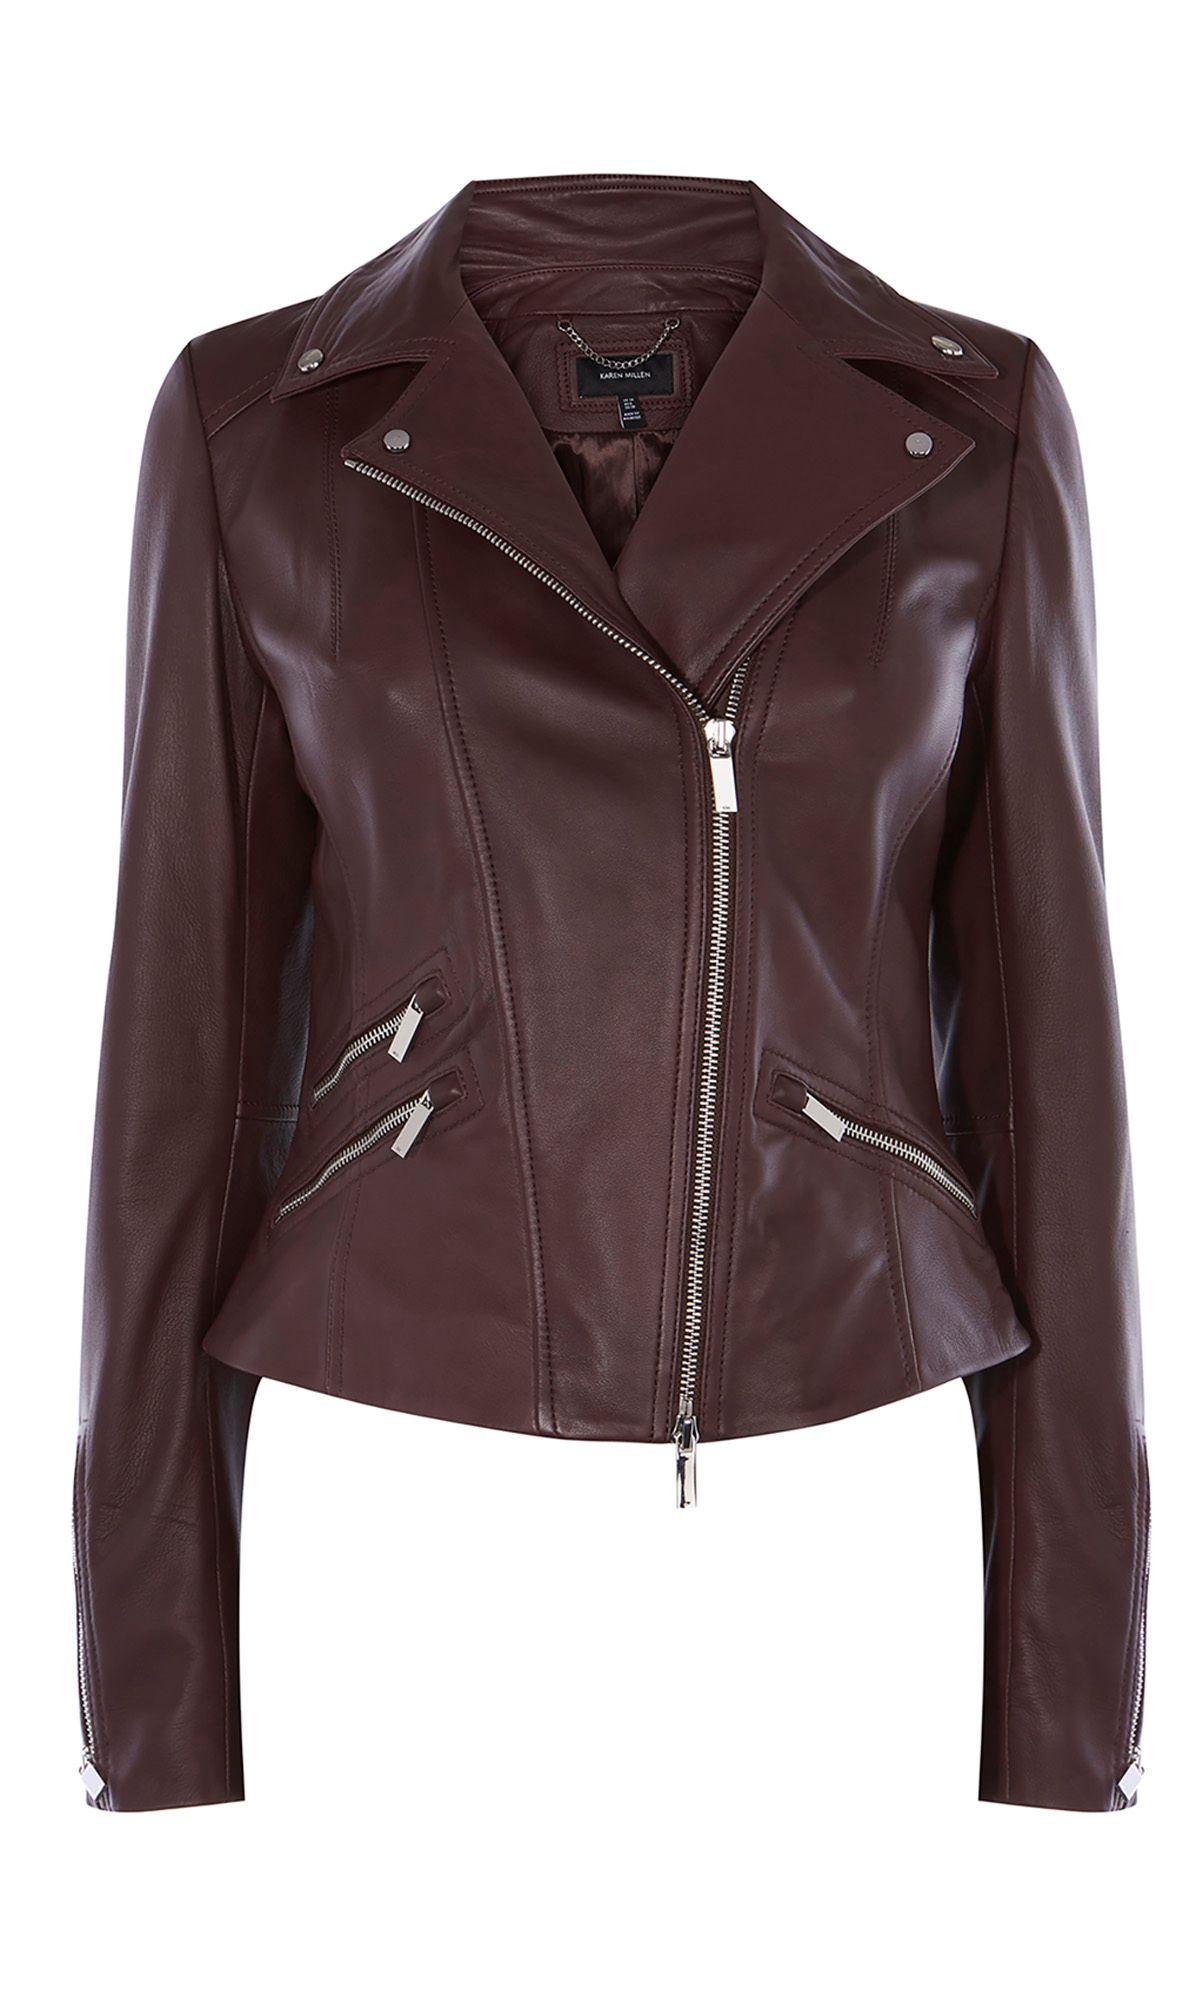 Karen Millen Leather Biker Jacket, Aubergine